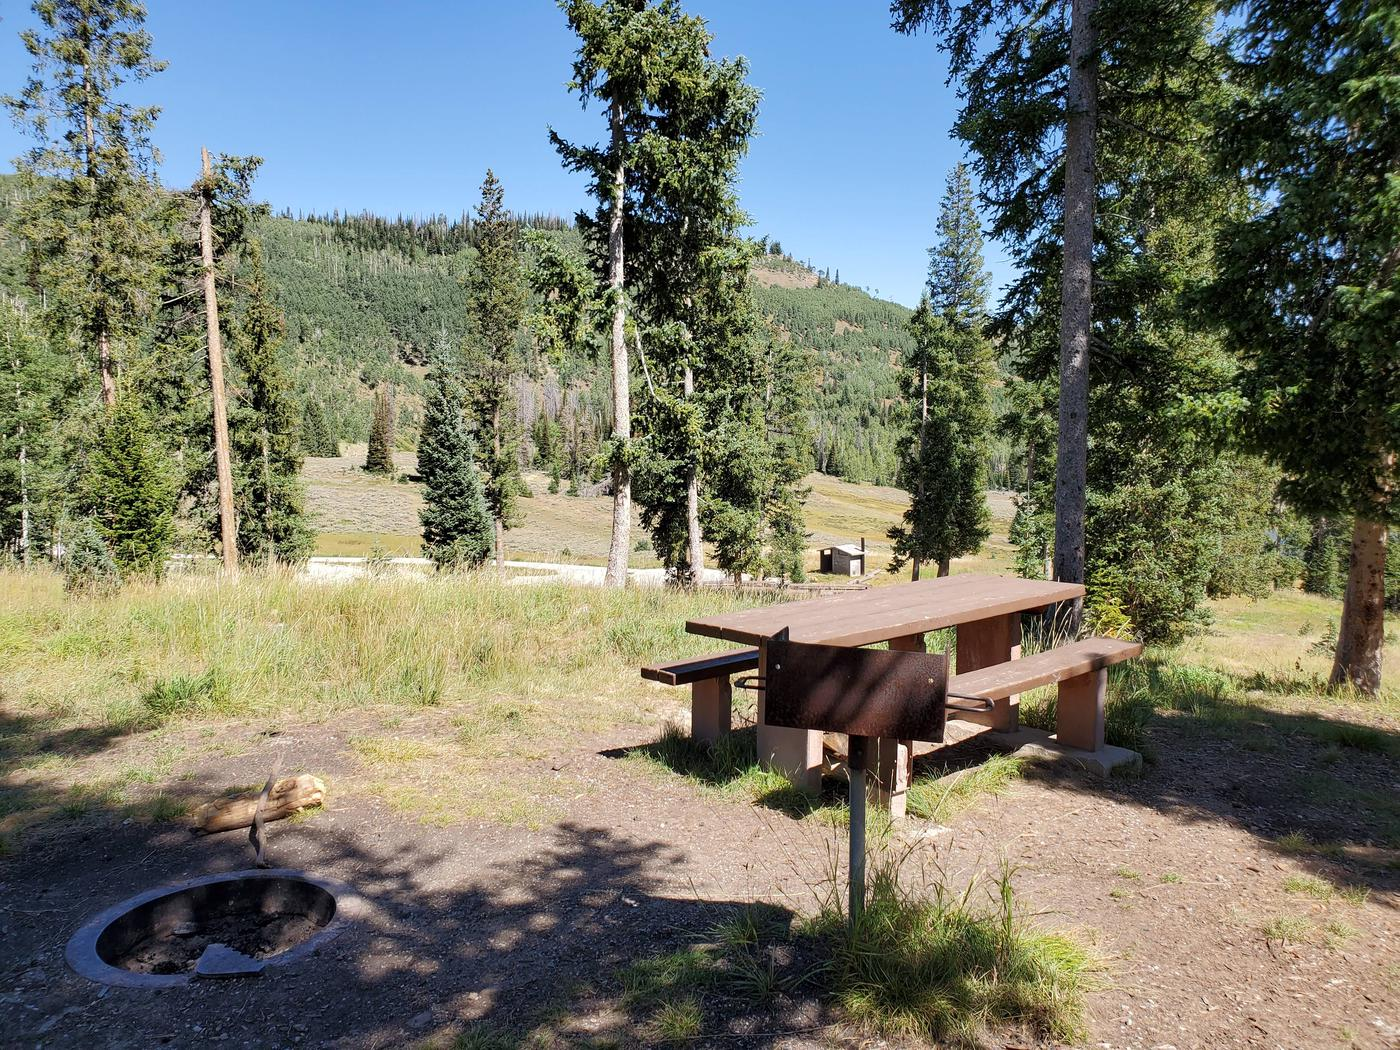 Flat Canyon Campground Site #9aFlat Canyon Campground Site #9